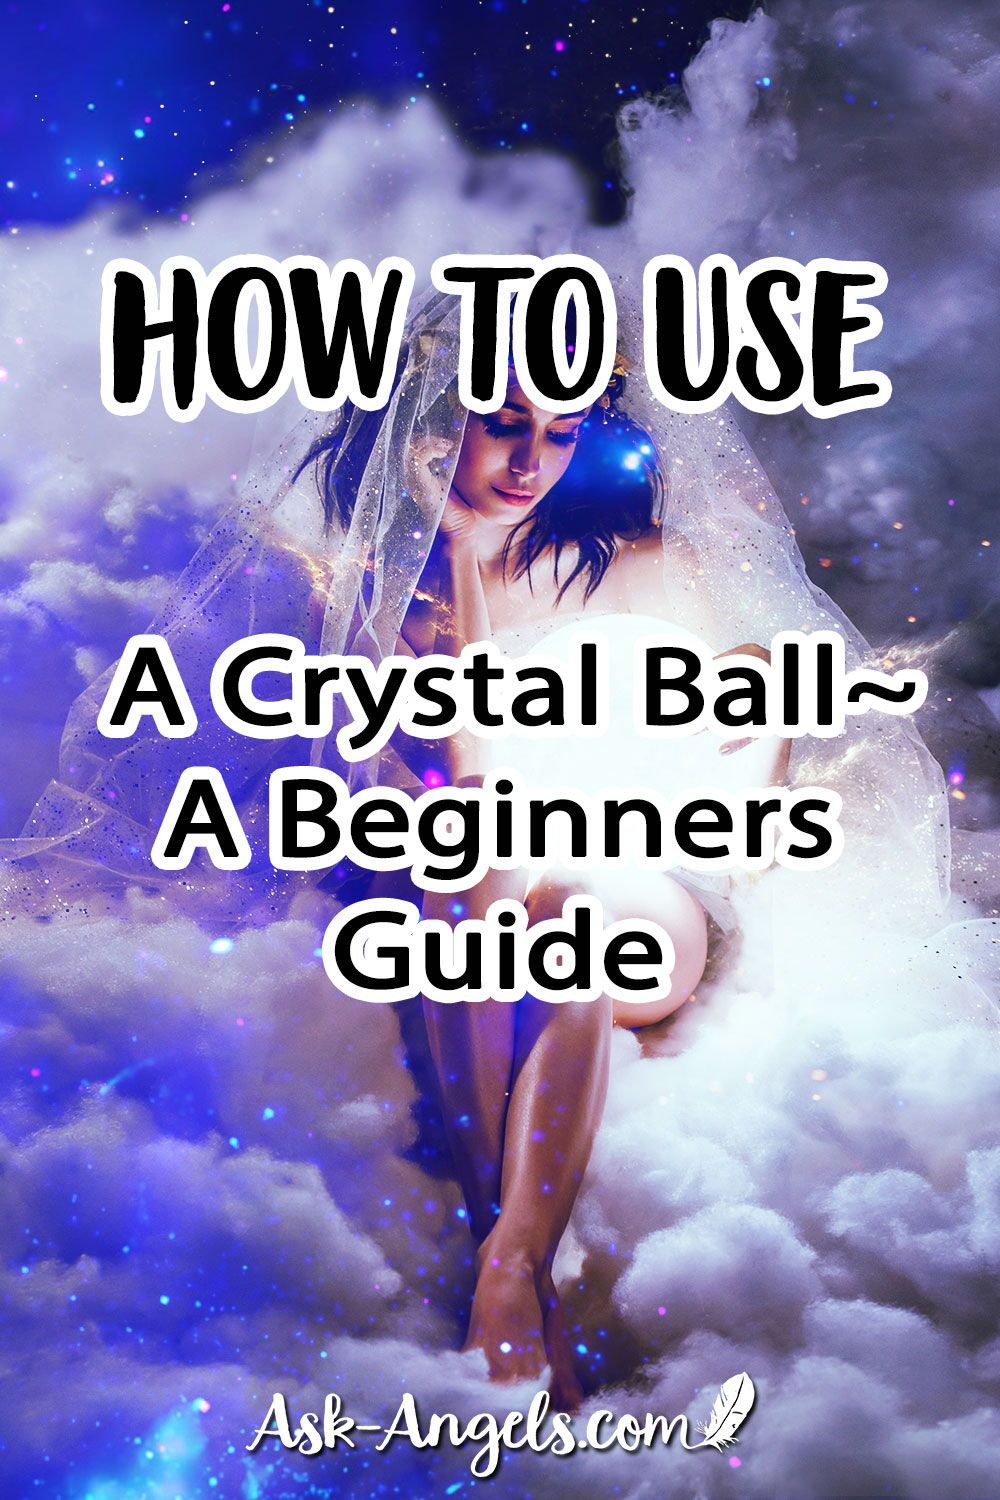 Ever want to learn how to use a crystal ball (it's a skill that's officially called scrying)? Read my beginners guide to get started. #crystal #crystalball